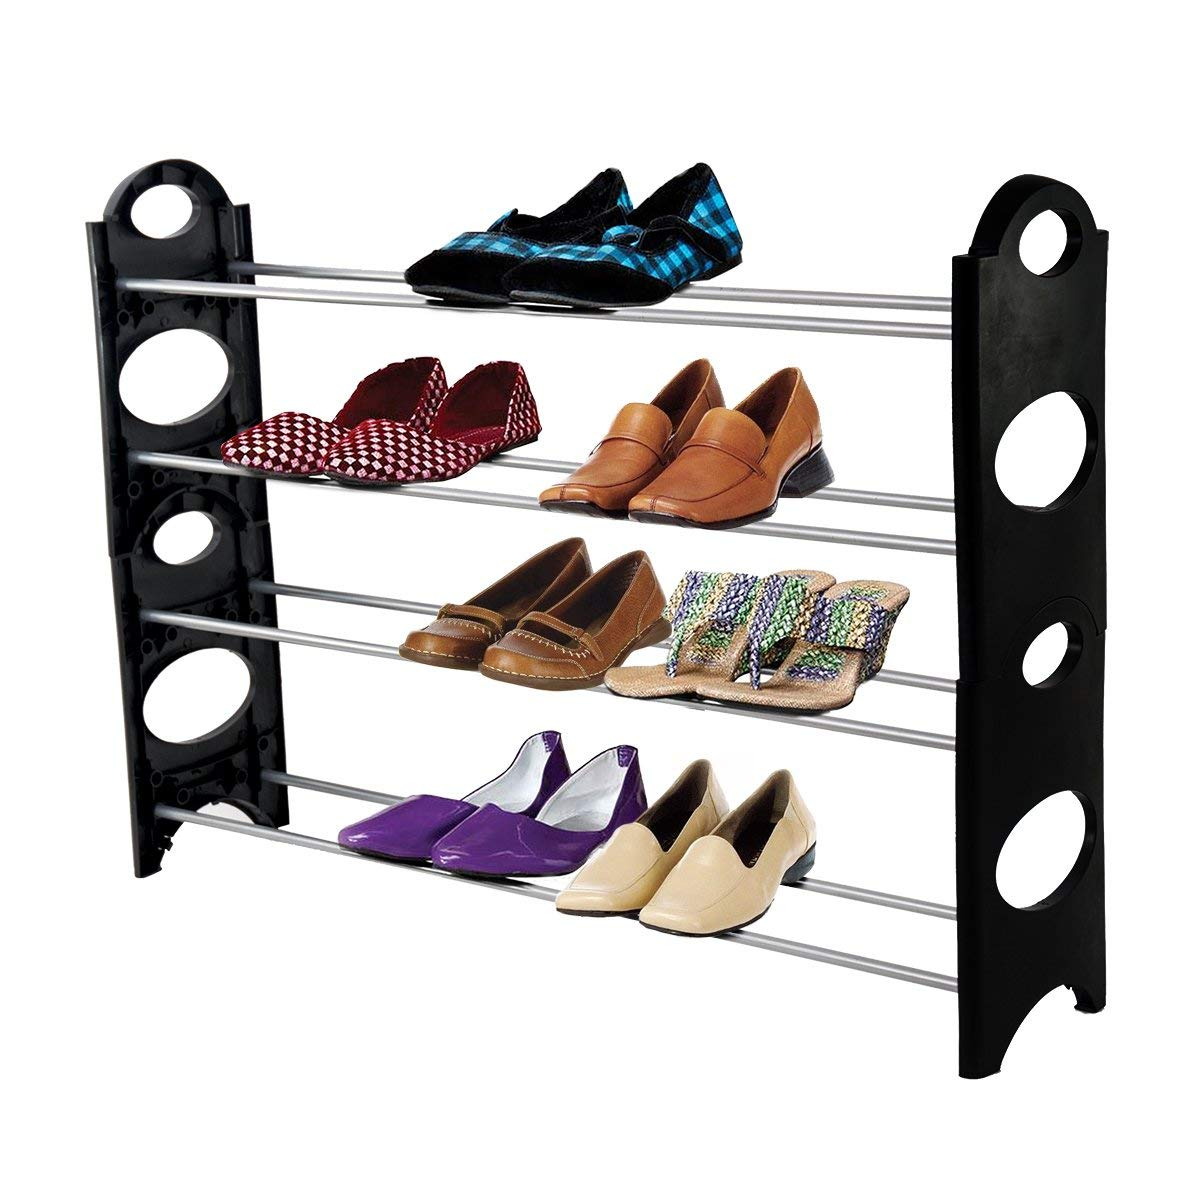 ForHauz Shoe Storage Rack for Closet or Entryway